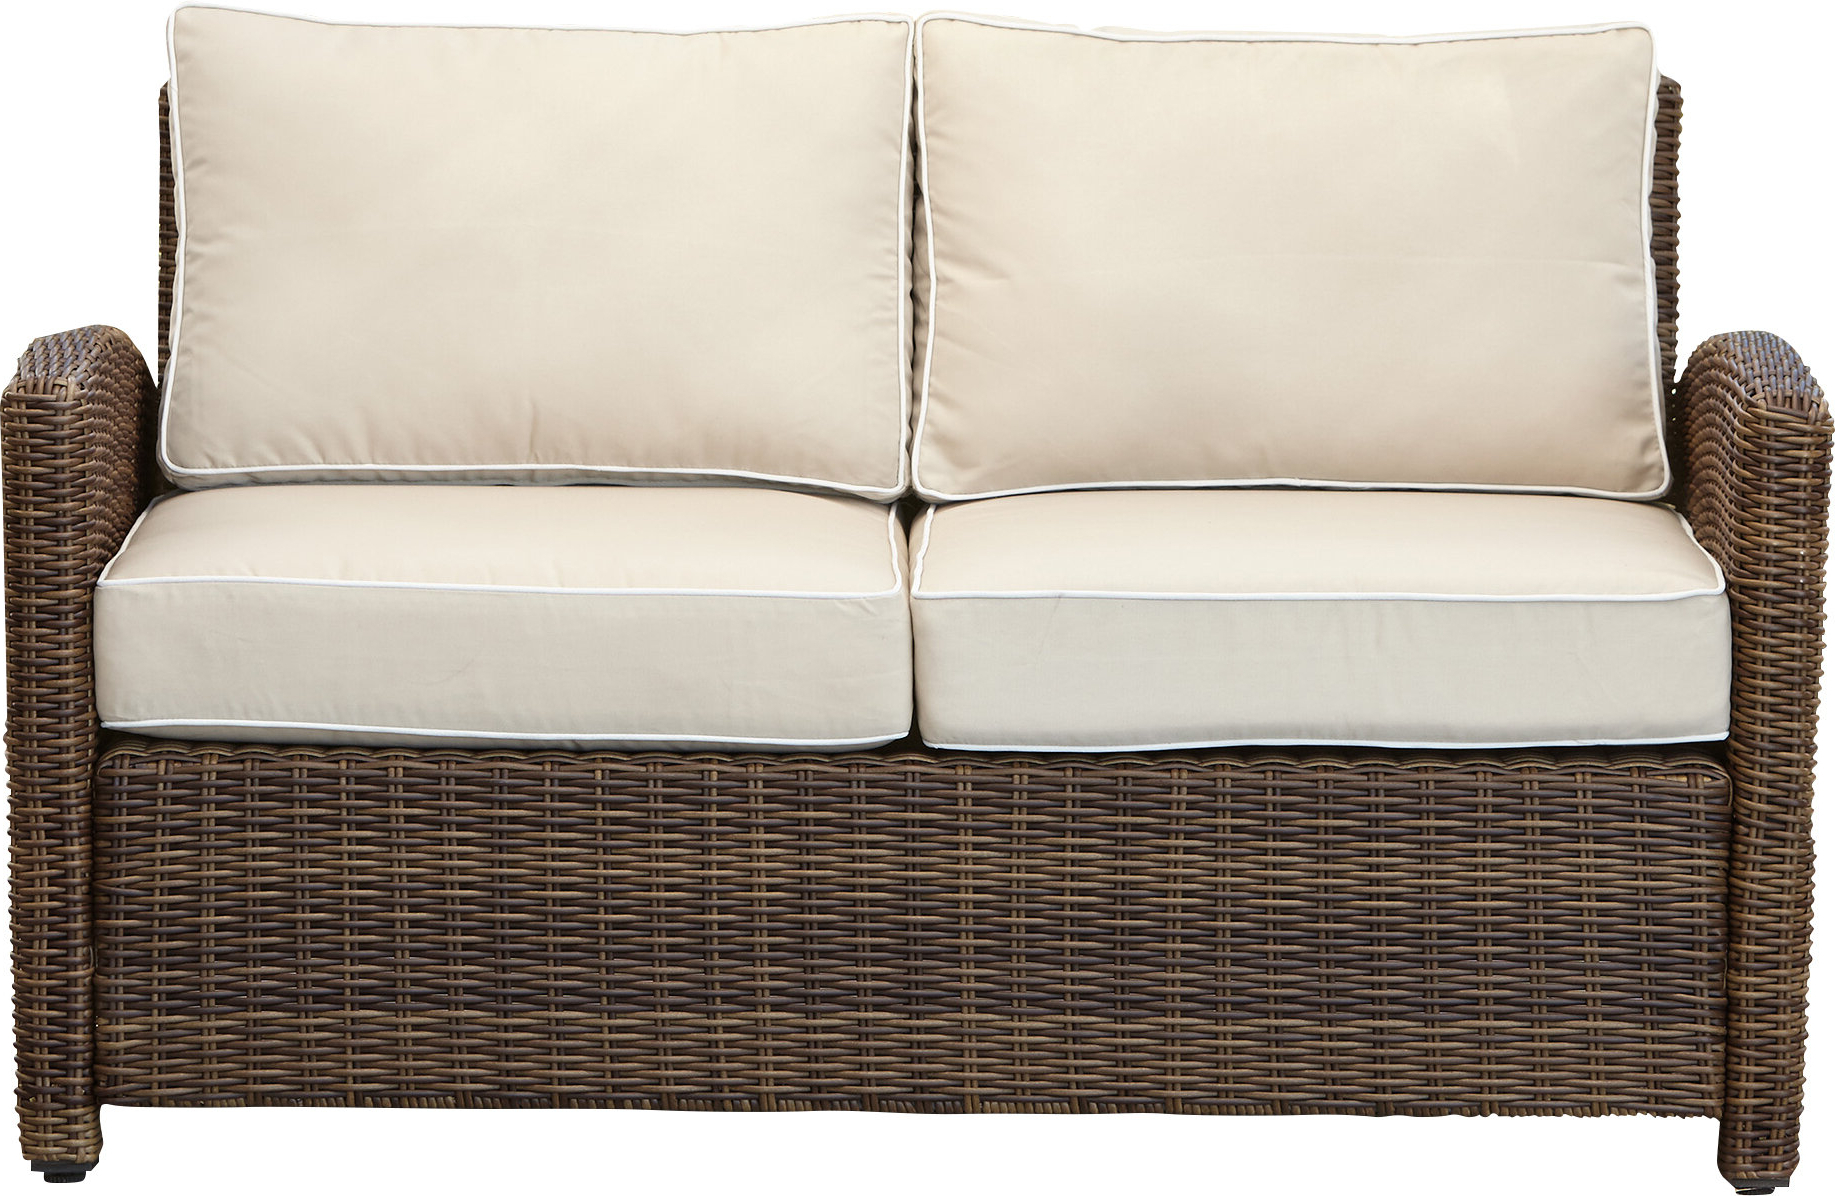 Lawson Wicker Loveseat With Cushions Within Famous Lawson Wicker Loveseats With Cushions (View 3 of 25)